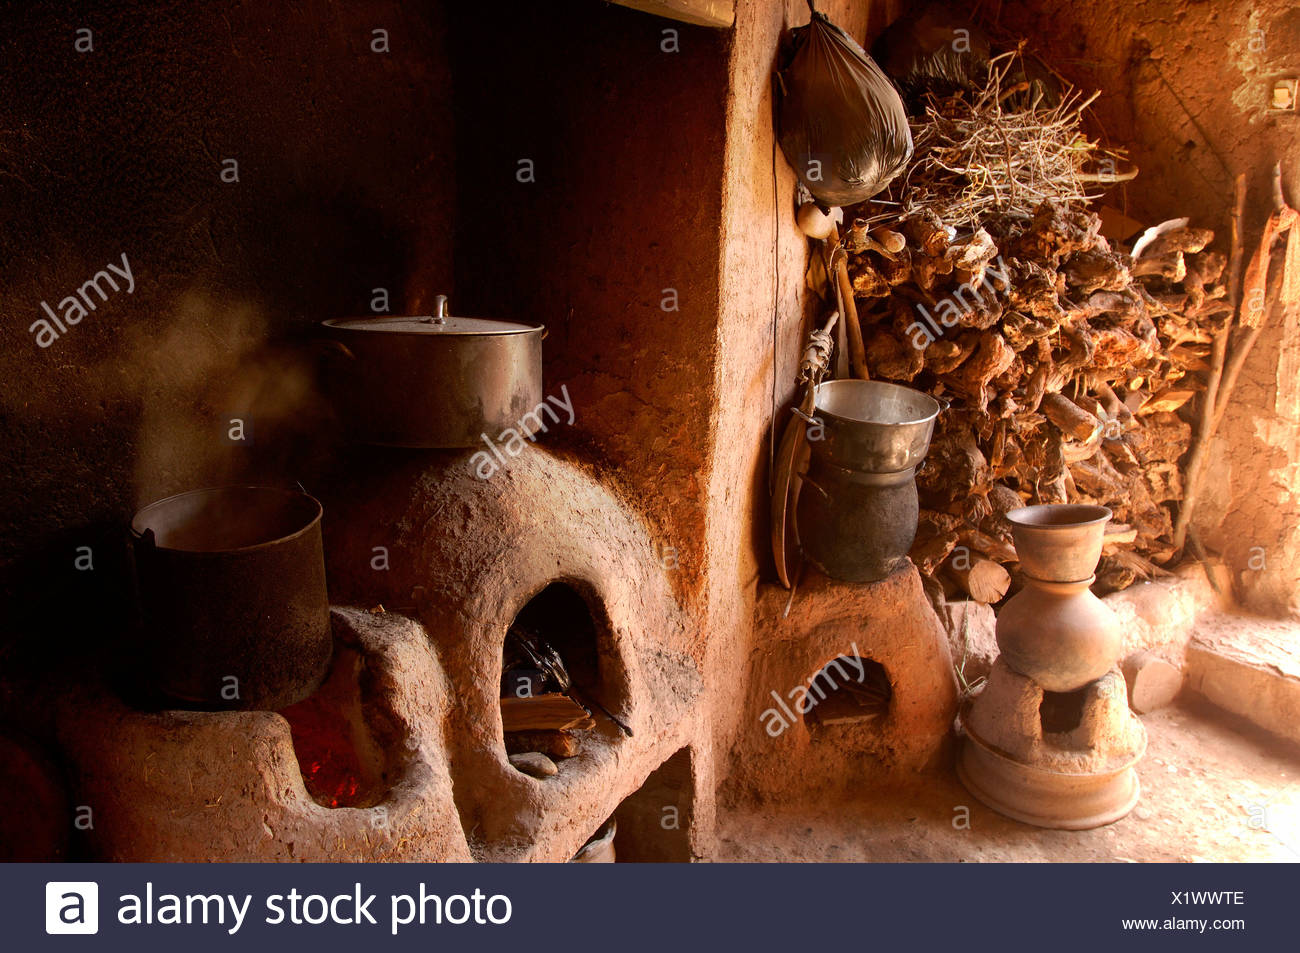 Berber house home inside equipment institution kitchen cuisine loam pots cooking boiling wood firewood F - Stock Image